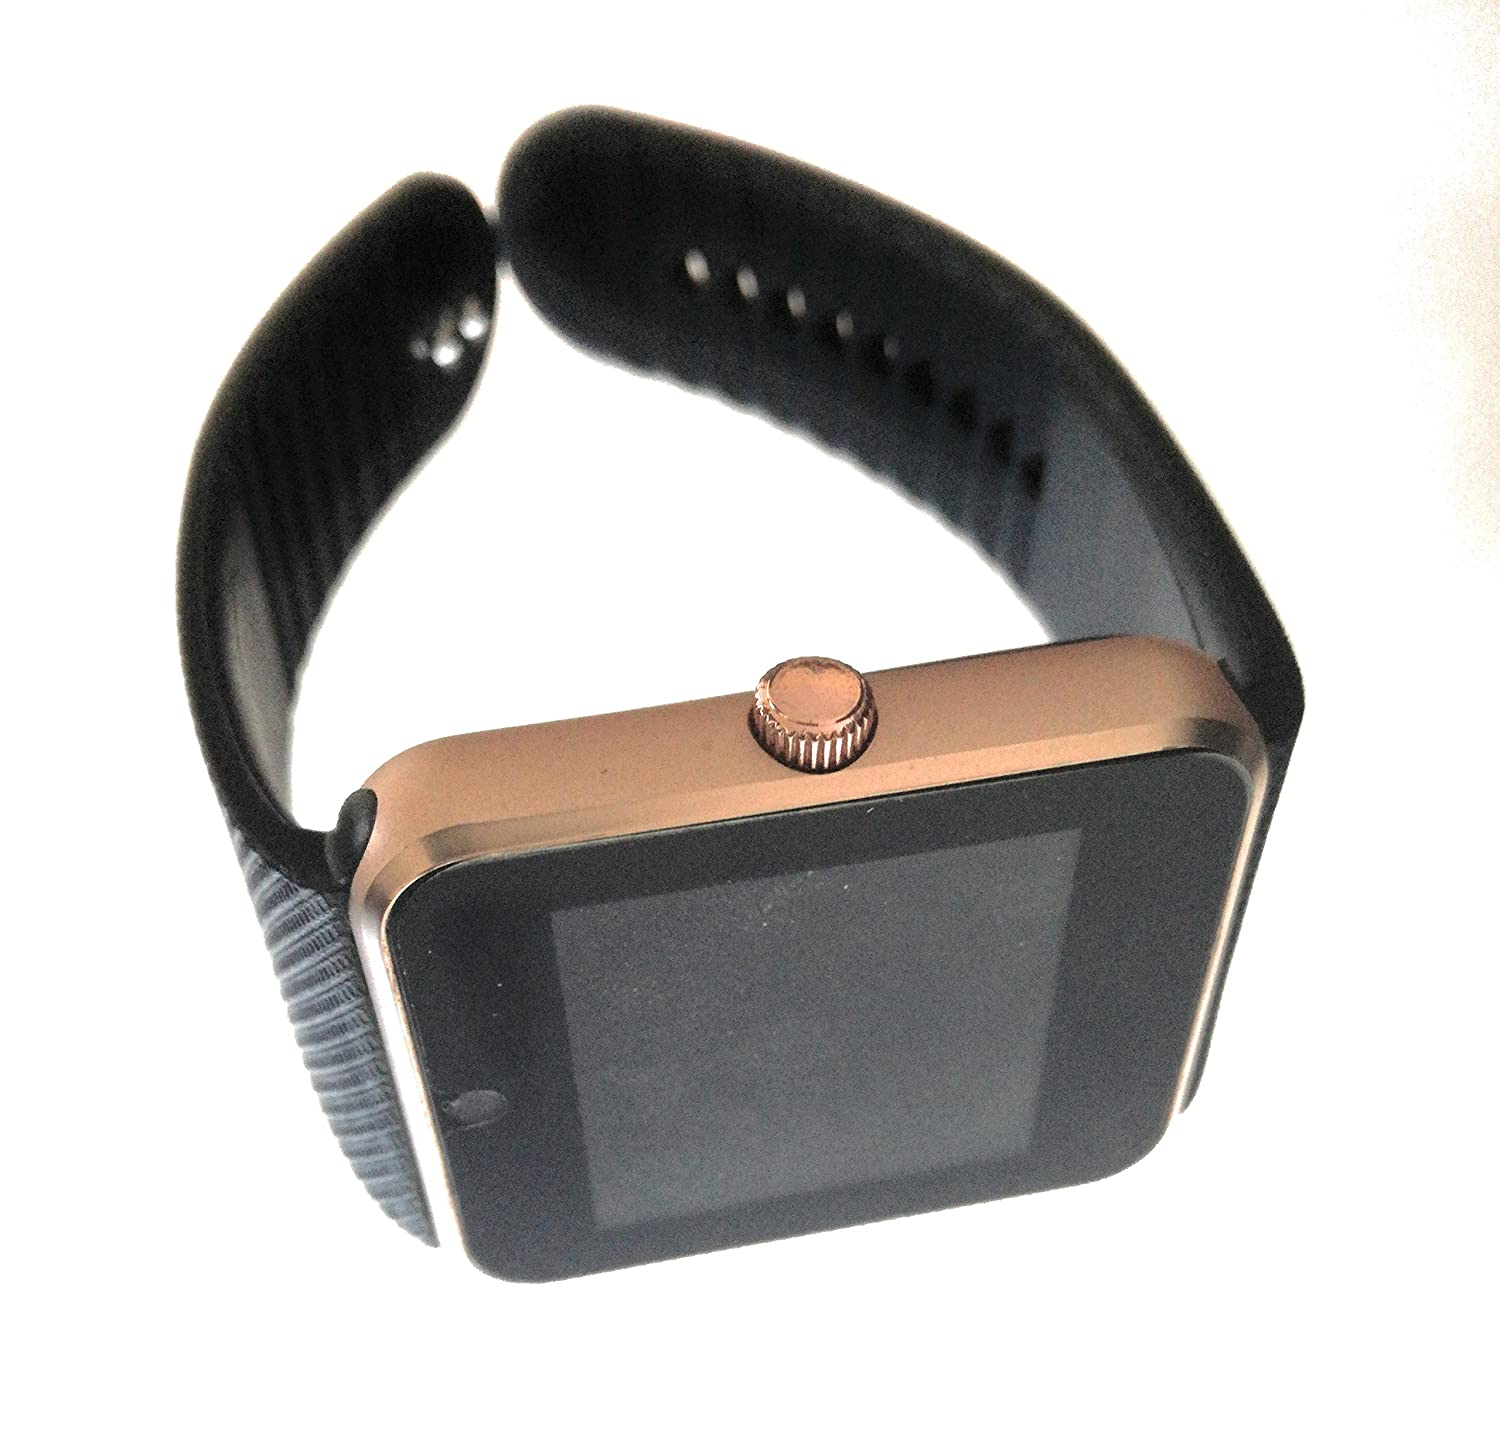 Reloj smart onnatek GT08 bluetooth: Amazon.es: Electrónica